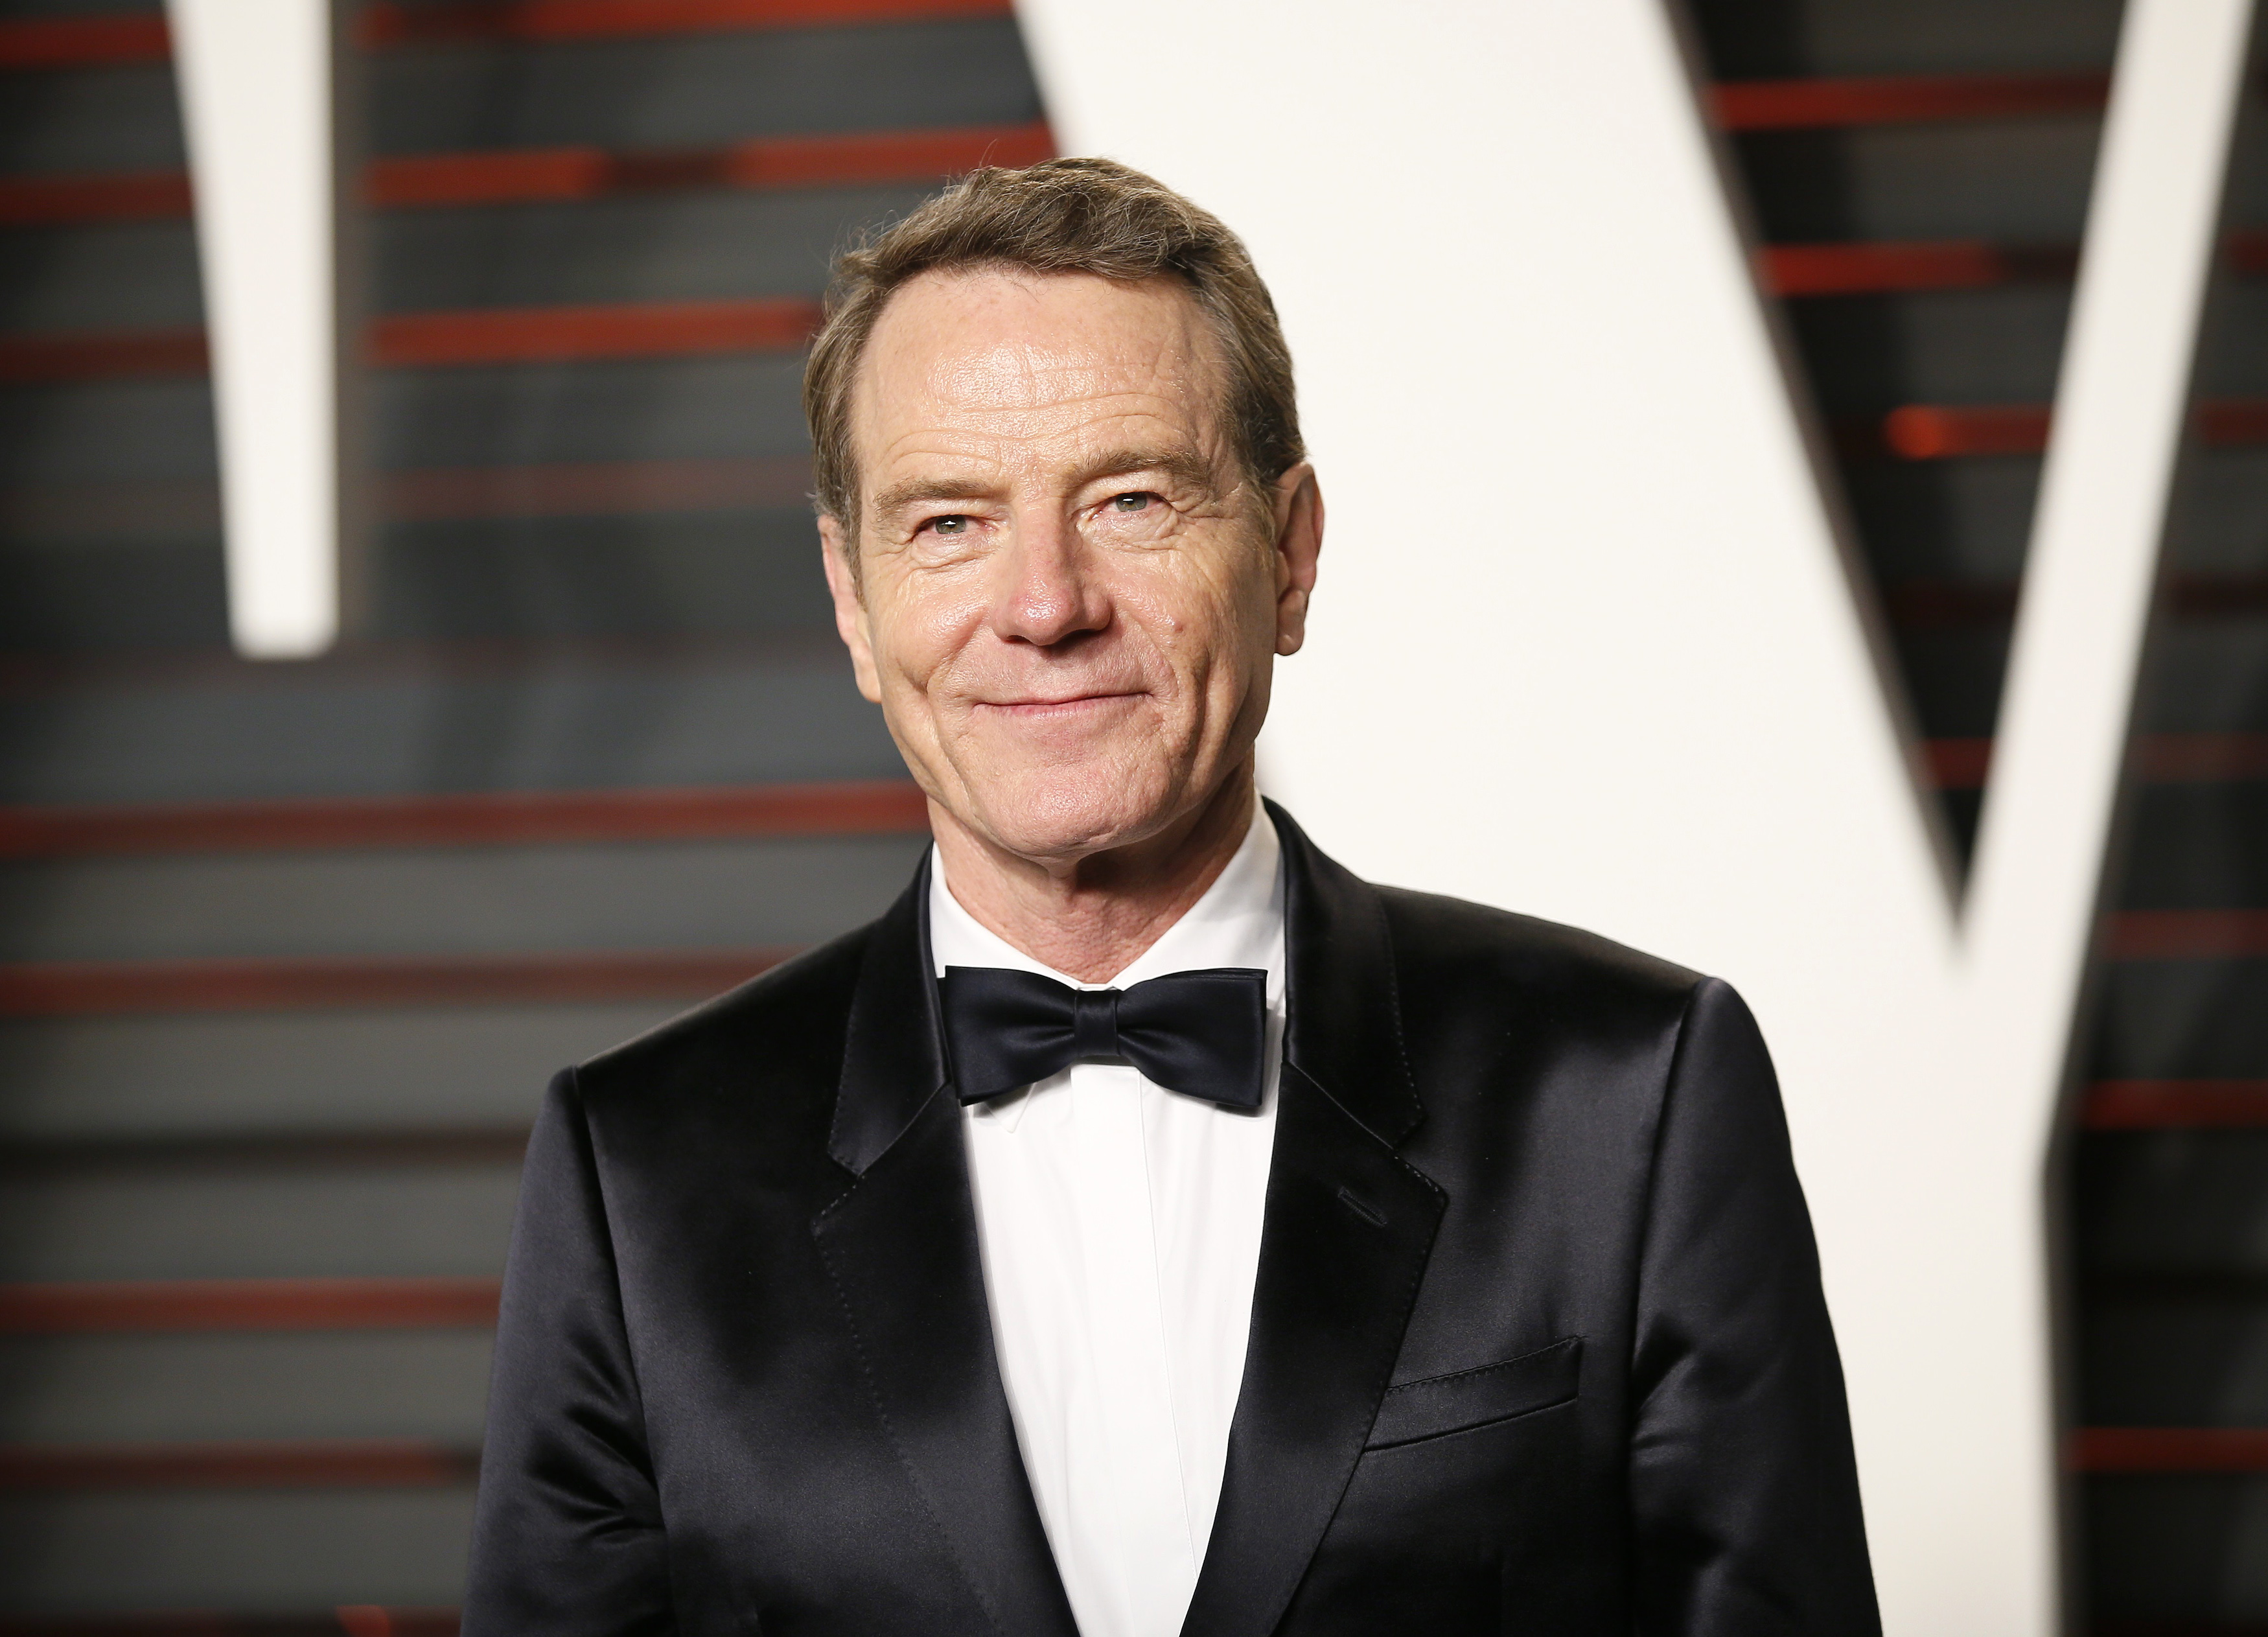 Bryan Cranston arrives at the Vanity Fair Oscar Party in Beverly Hills. (Photo credit: REUTERS/Danny Moloshok)